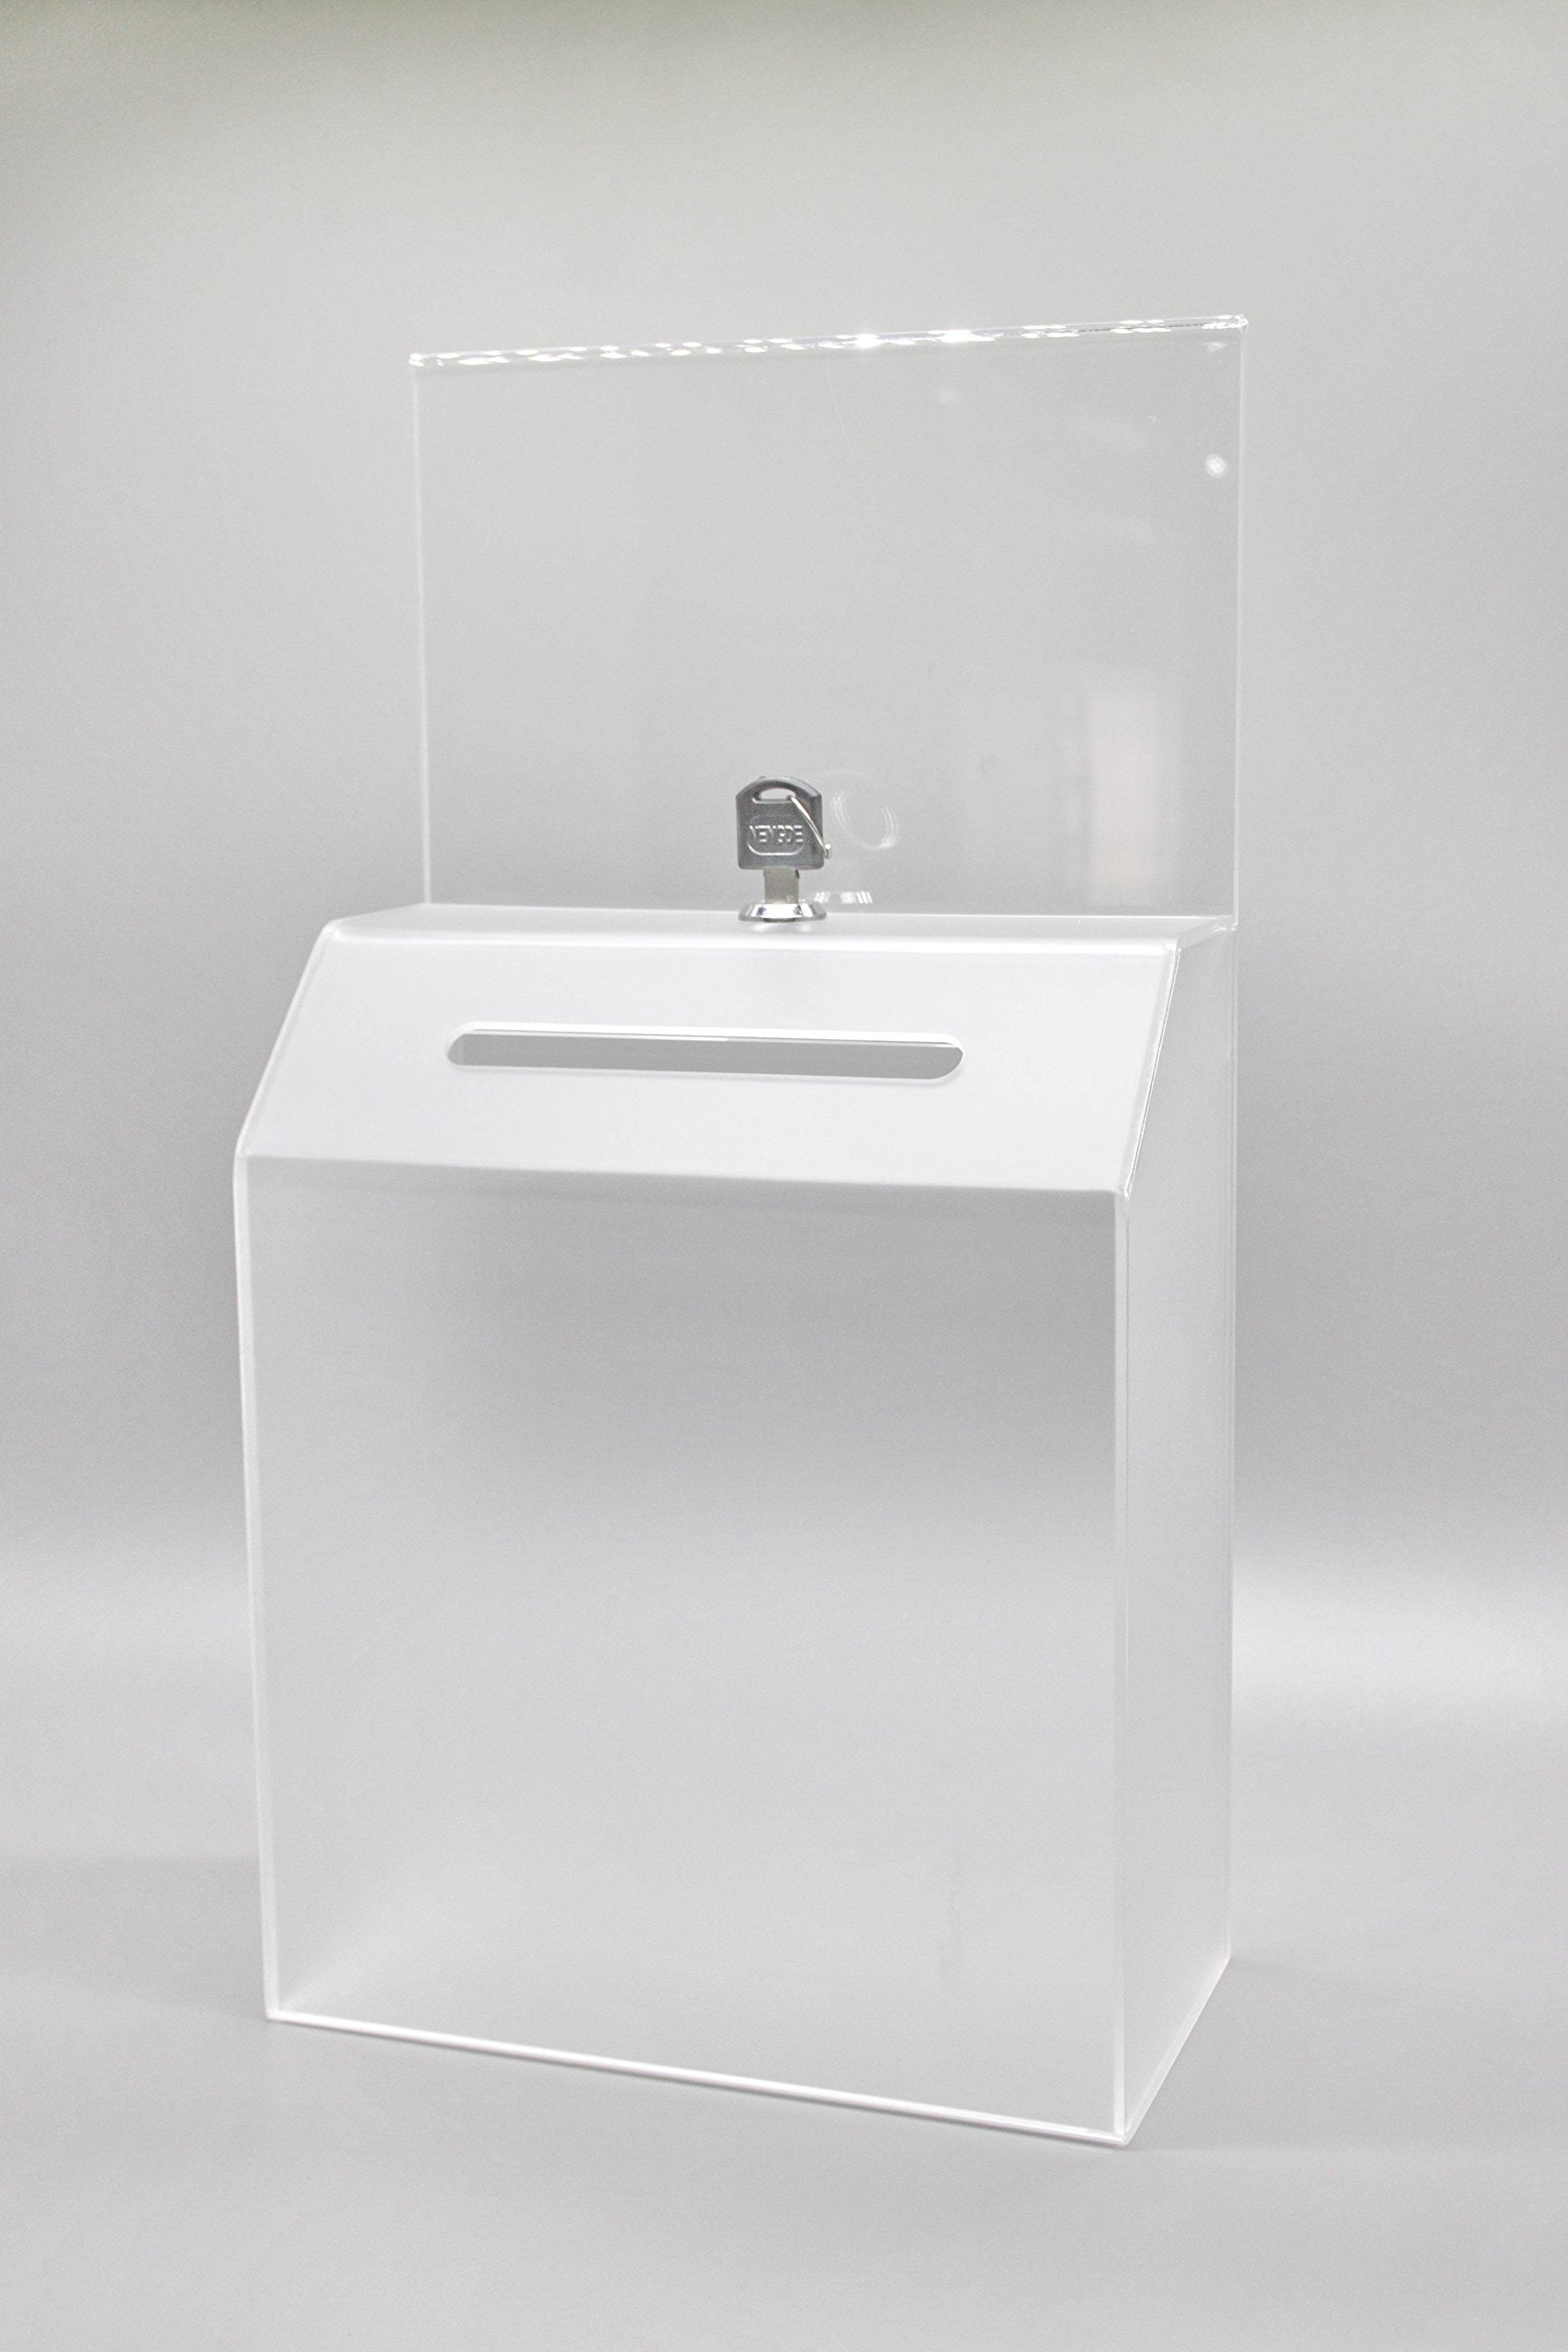 FixtureDisplays 8.5''x16.0''x 4.5''Frosted Acrylic Ballot Box w/ Sign Holder,Wall or Countertop-Clear19243